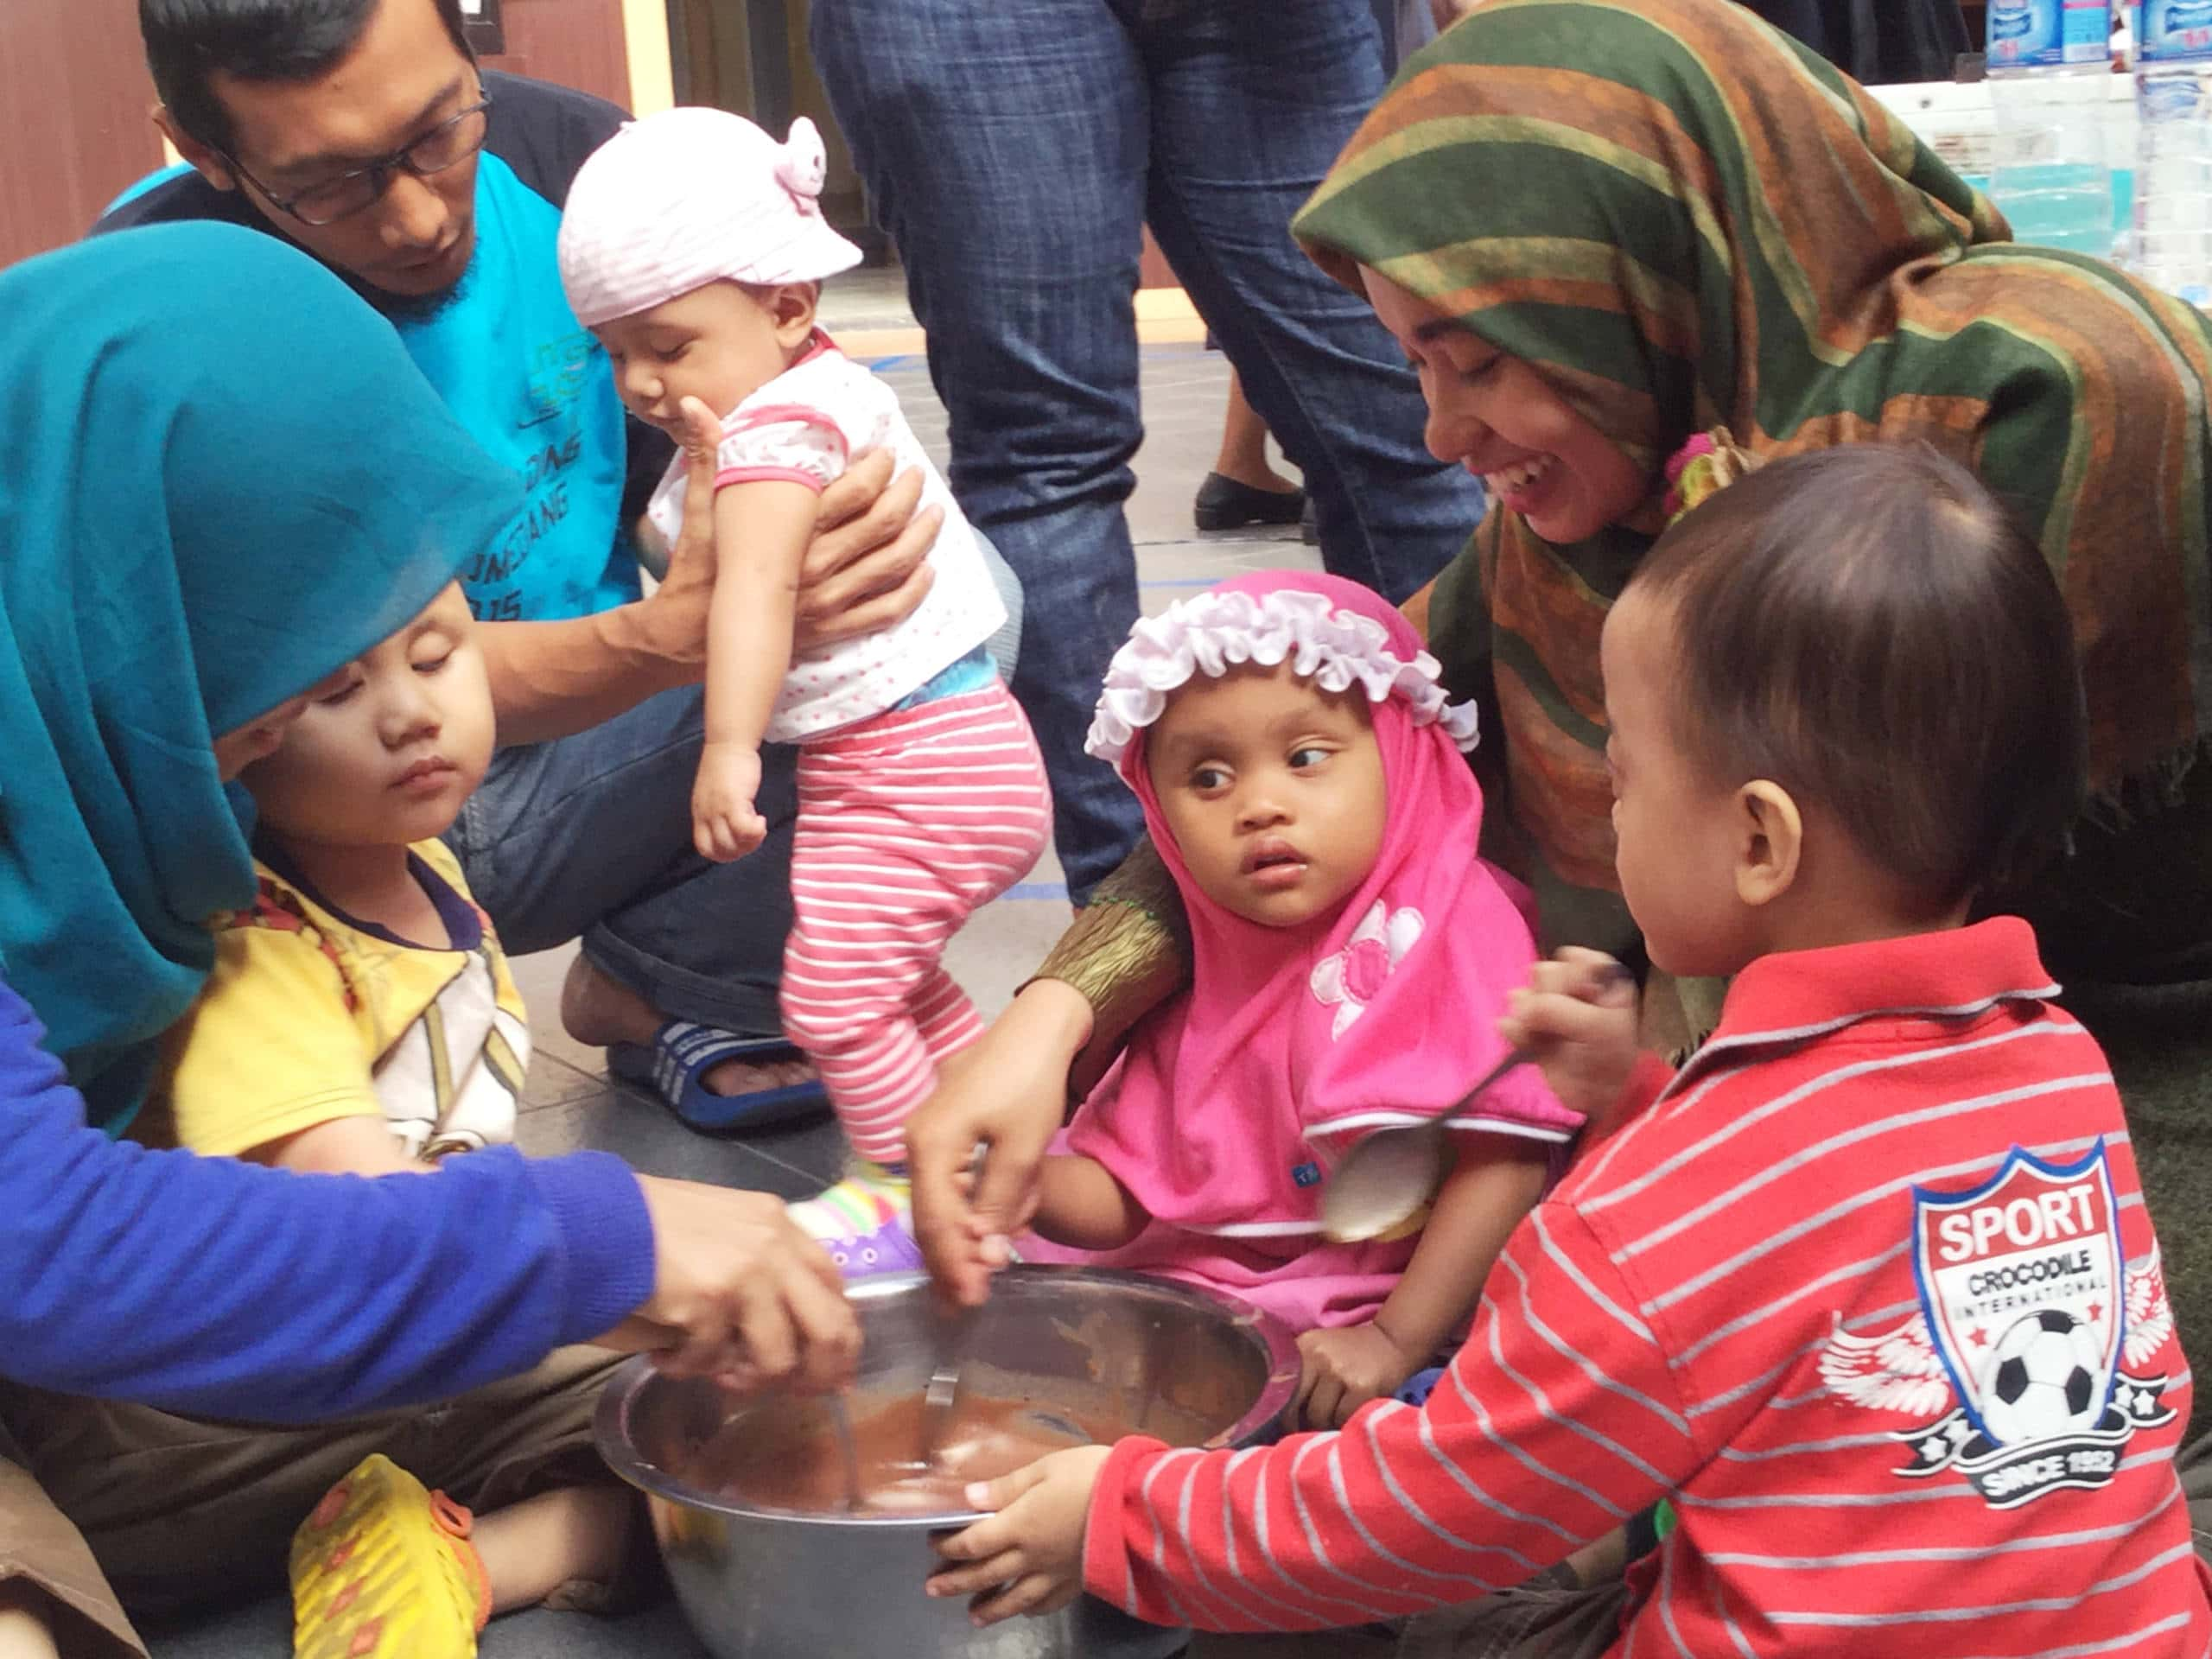 In all 17 families participated in Indonesia's first-ever